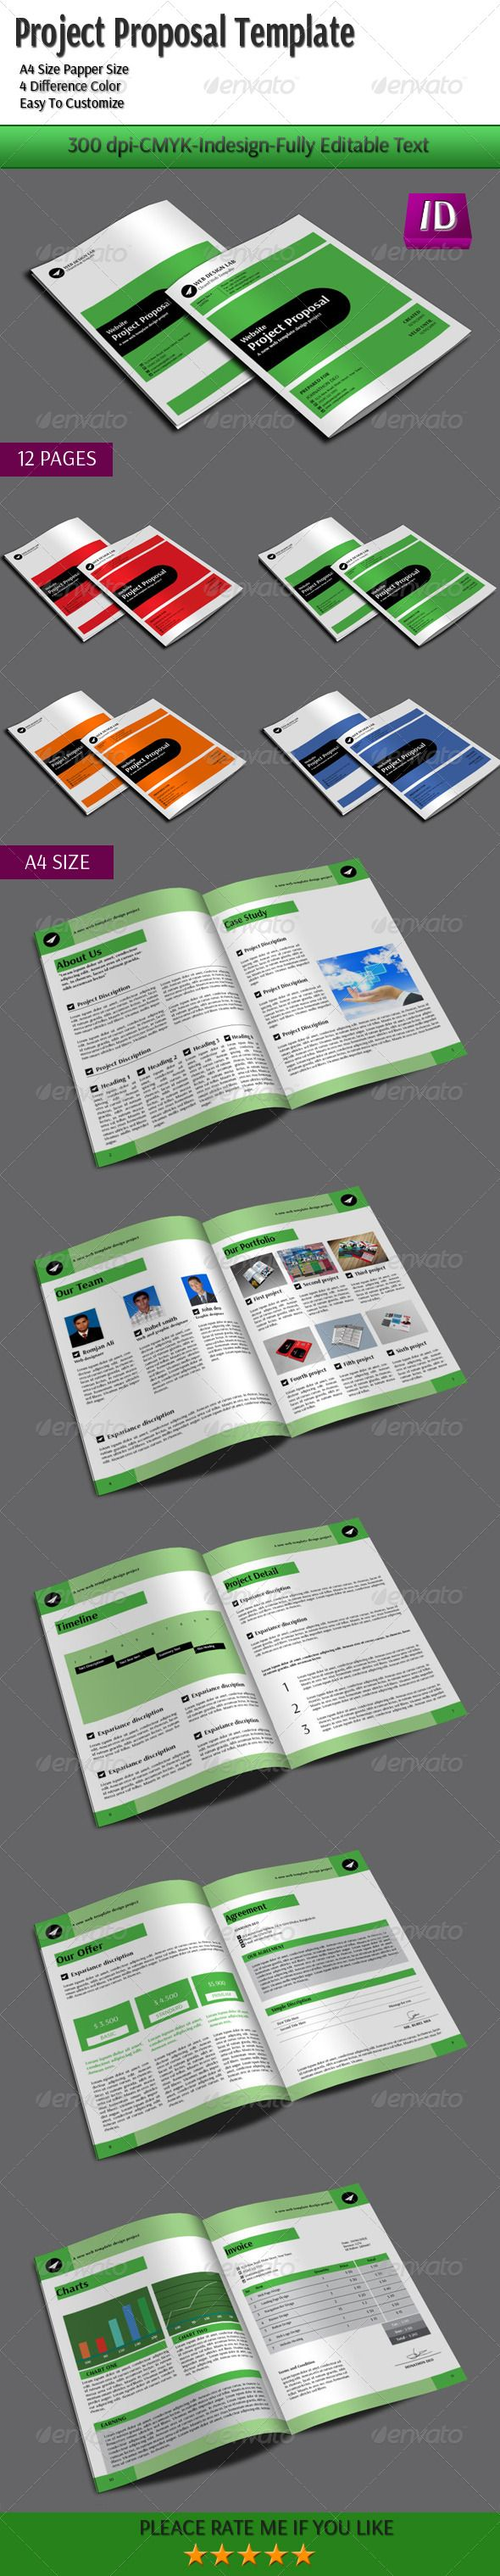 Project Proposal Template #GraphicRiver Discription Ready For Print (300  DPI CMYK) 4 Difference